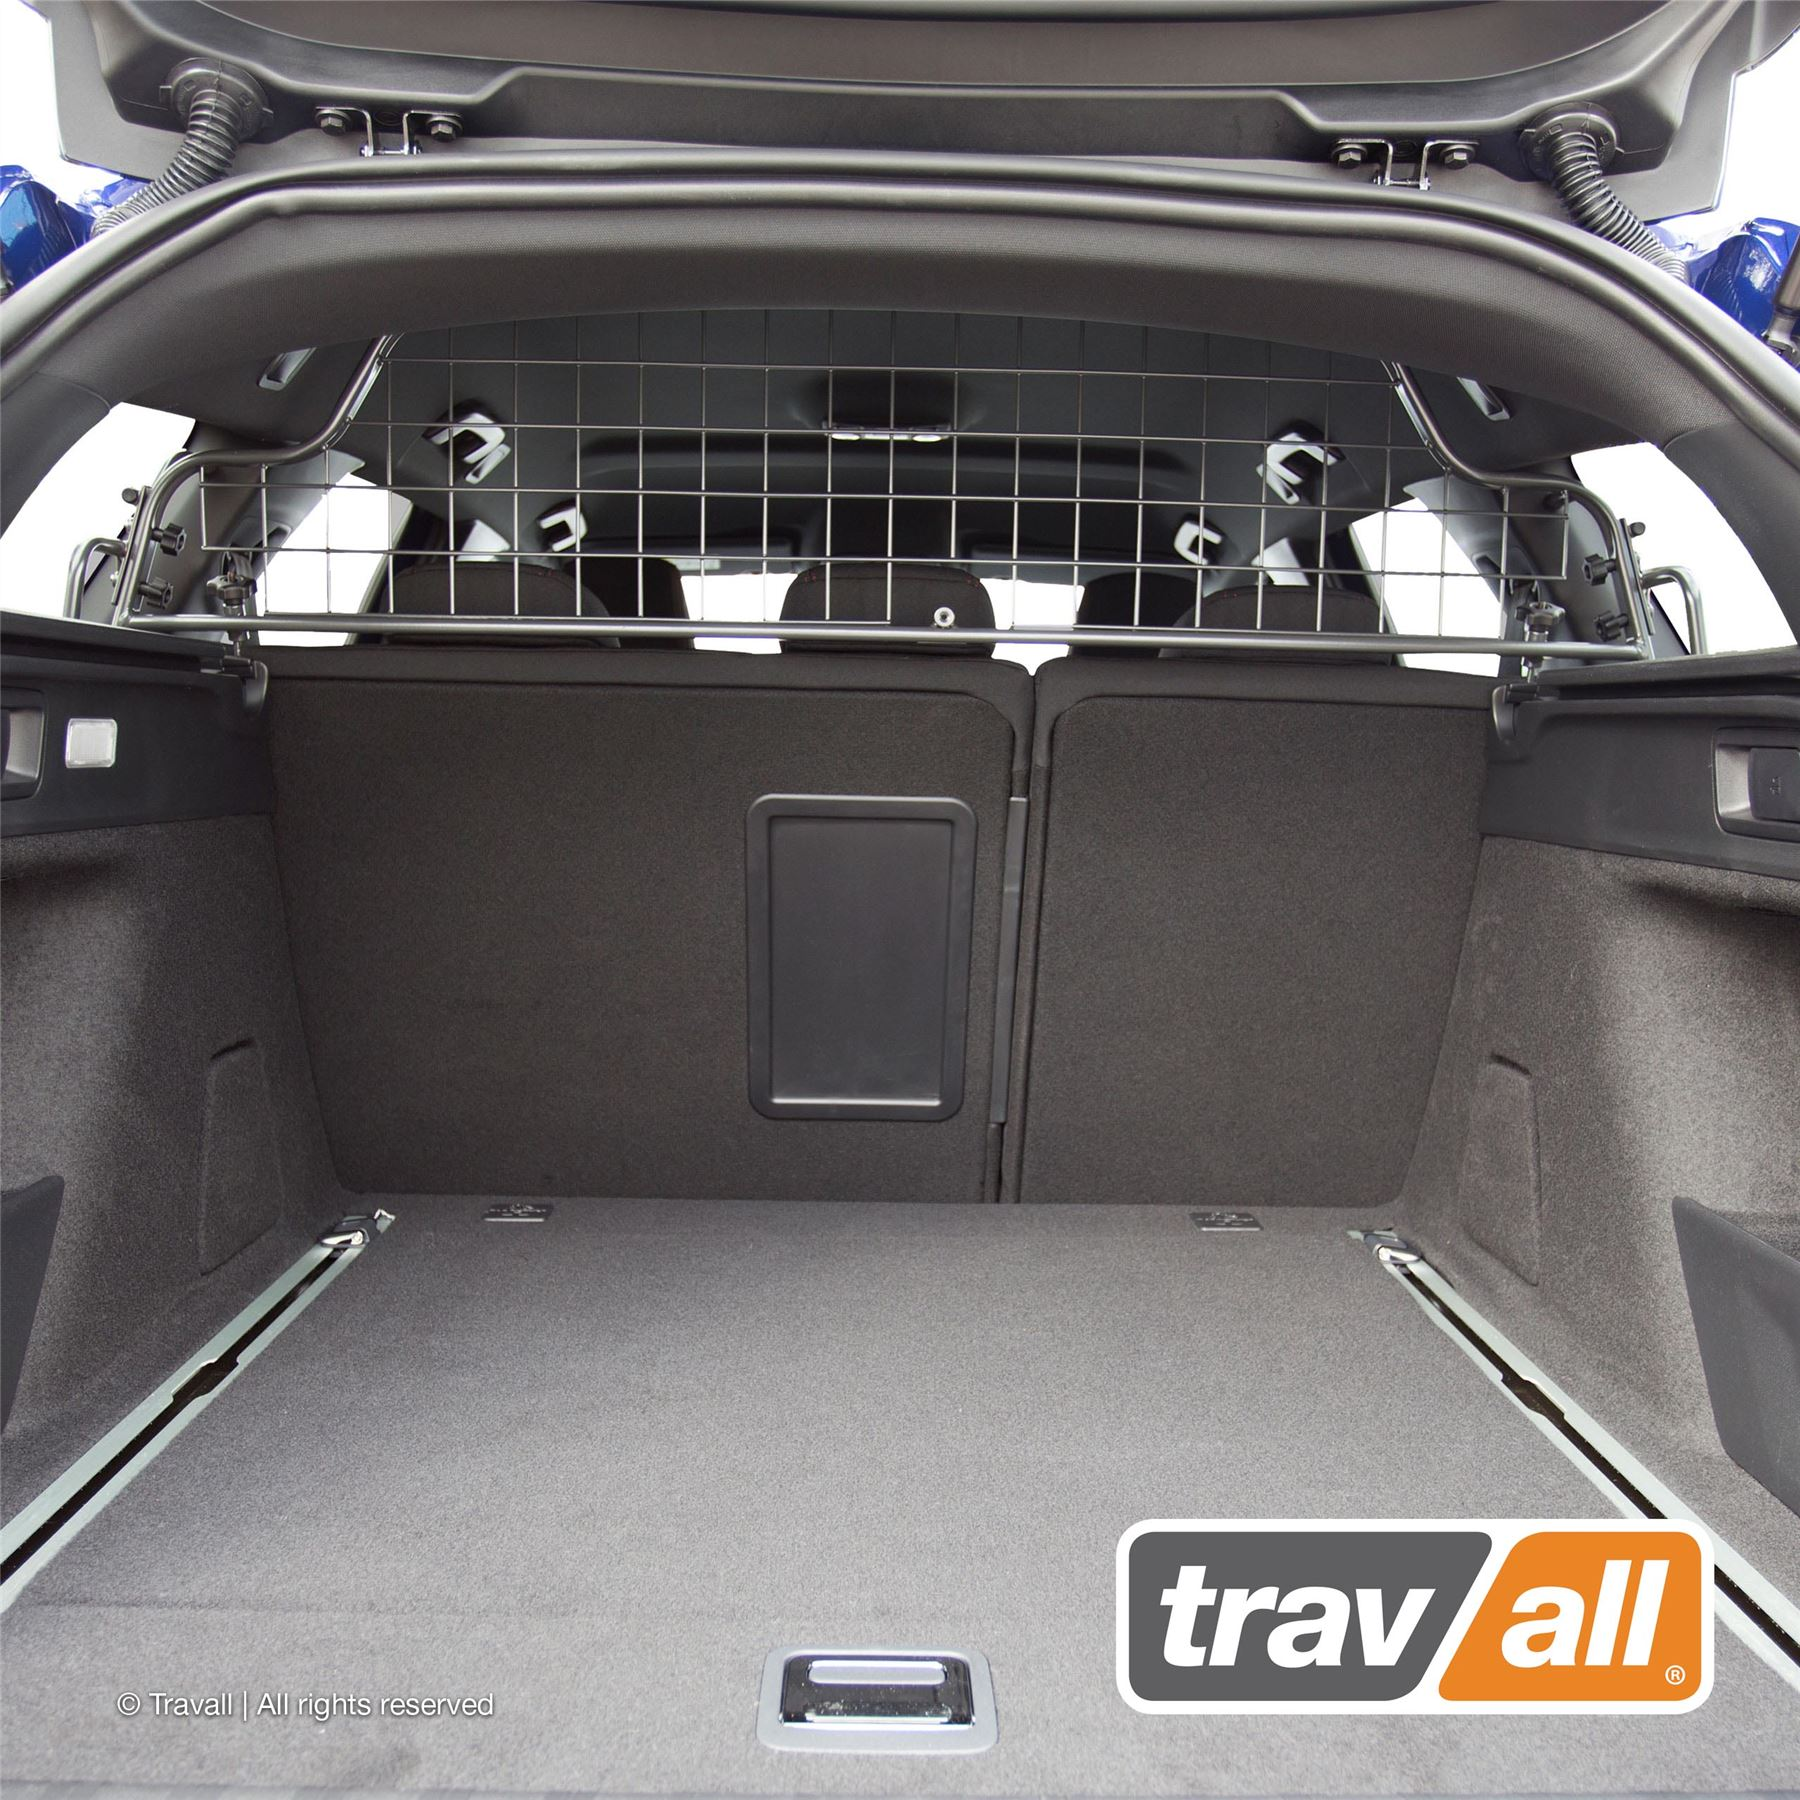 Details About Travall Dog Guard For Peugeot 308 Sw Estate